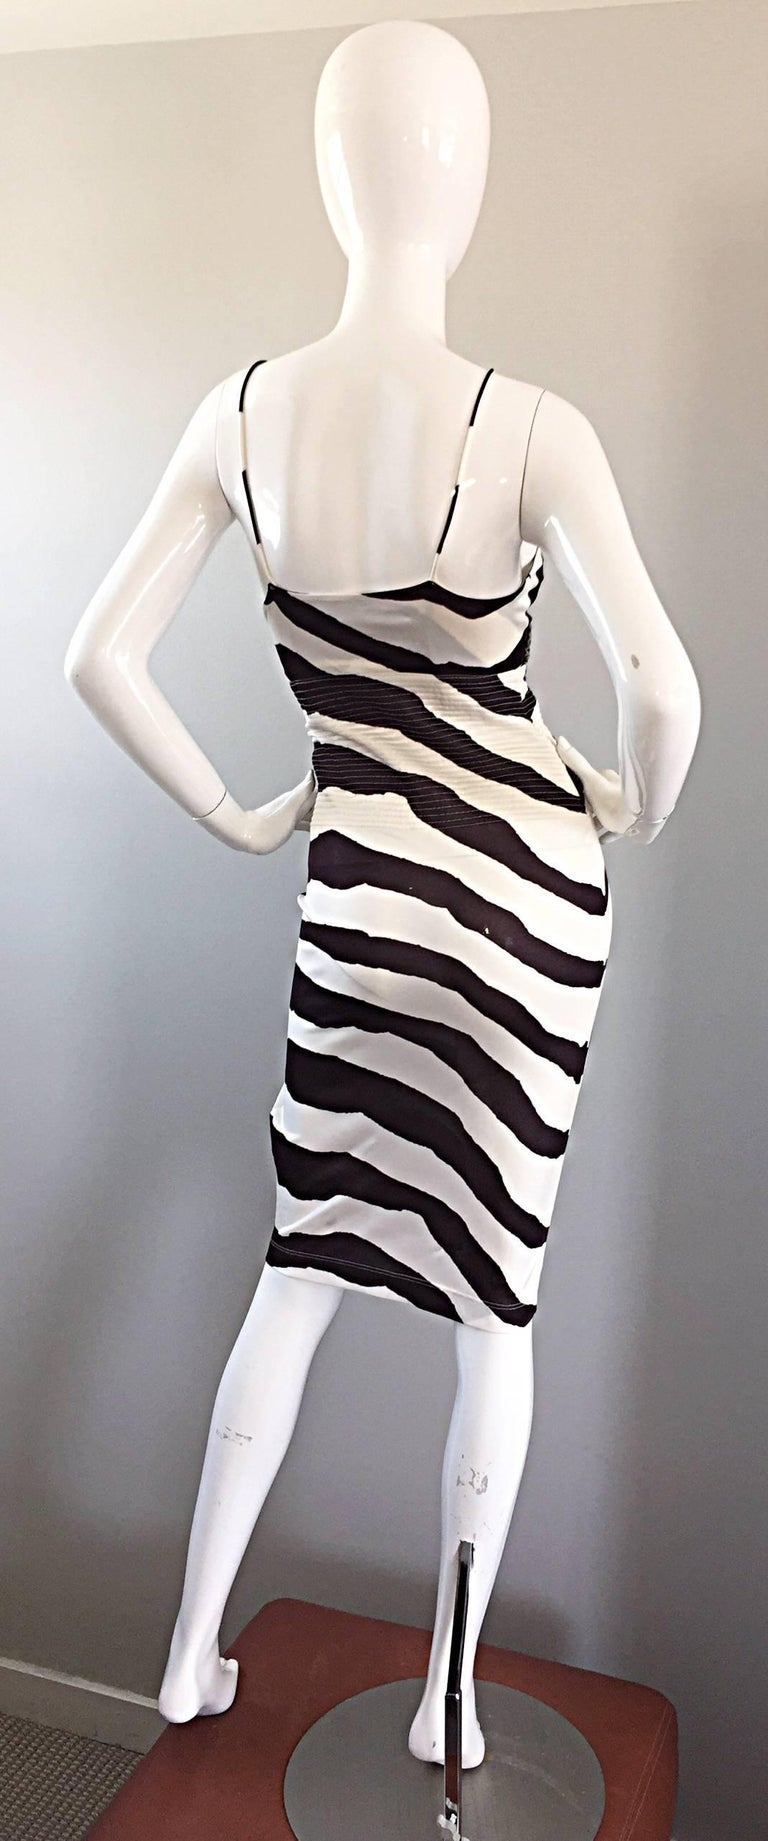 Vintage Gianfranco Ferre 1990s Brown + White Zebra Jeweled BodyCon Jersey Dress In Excellent Condition For Sale In Chicago, IL